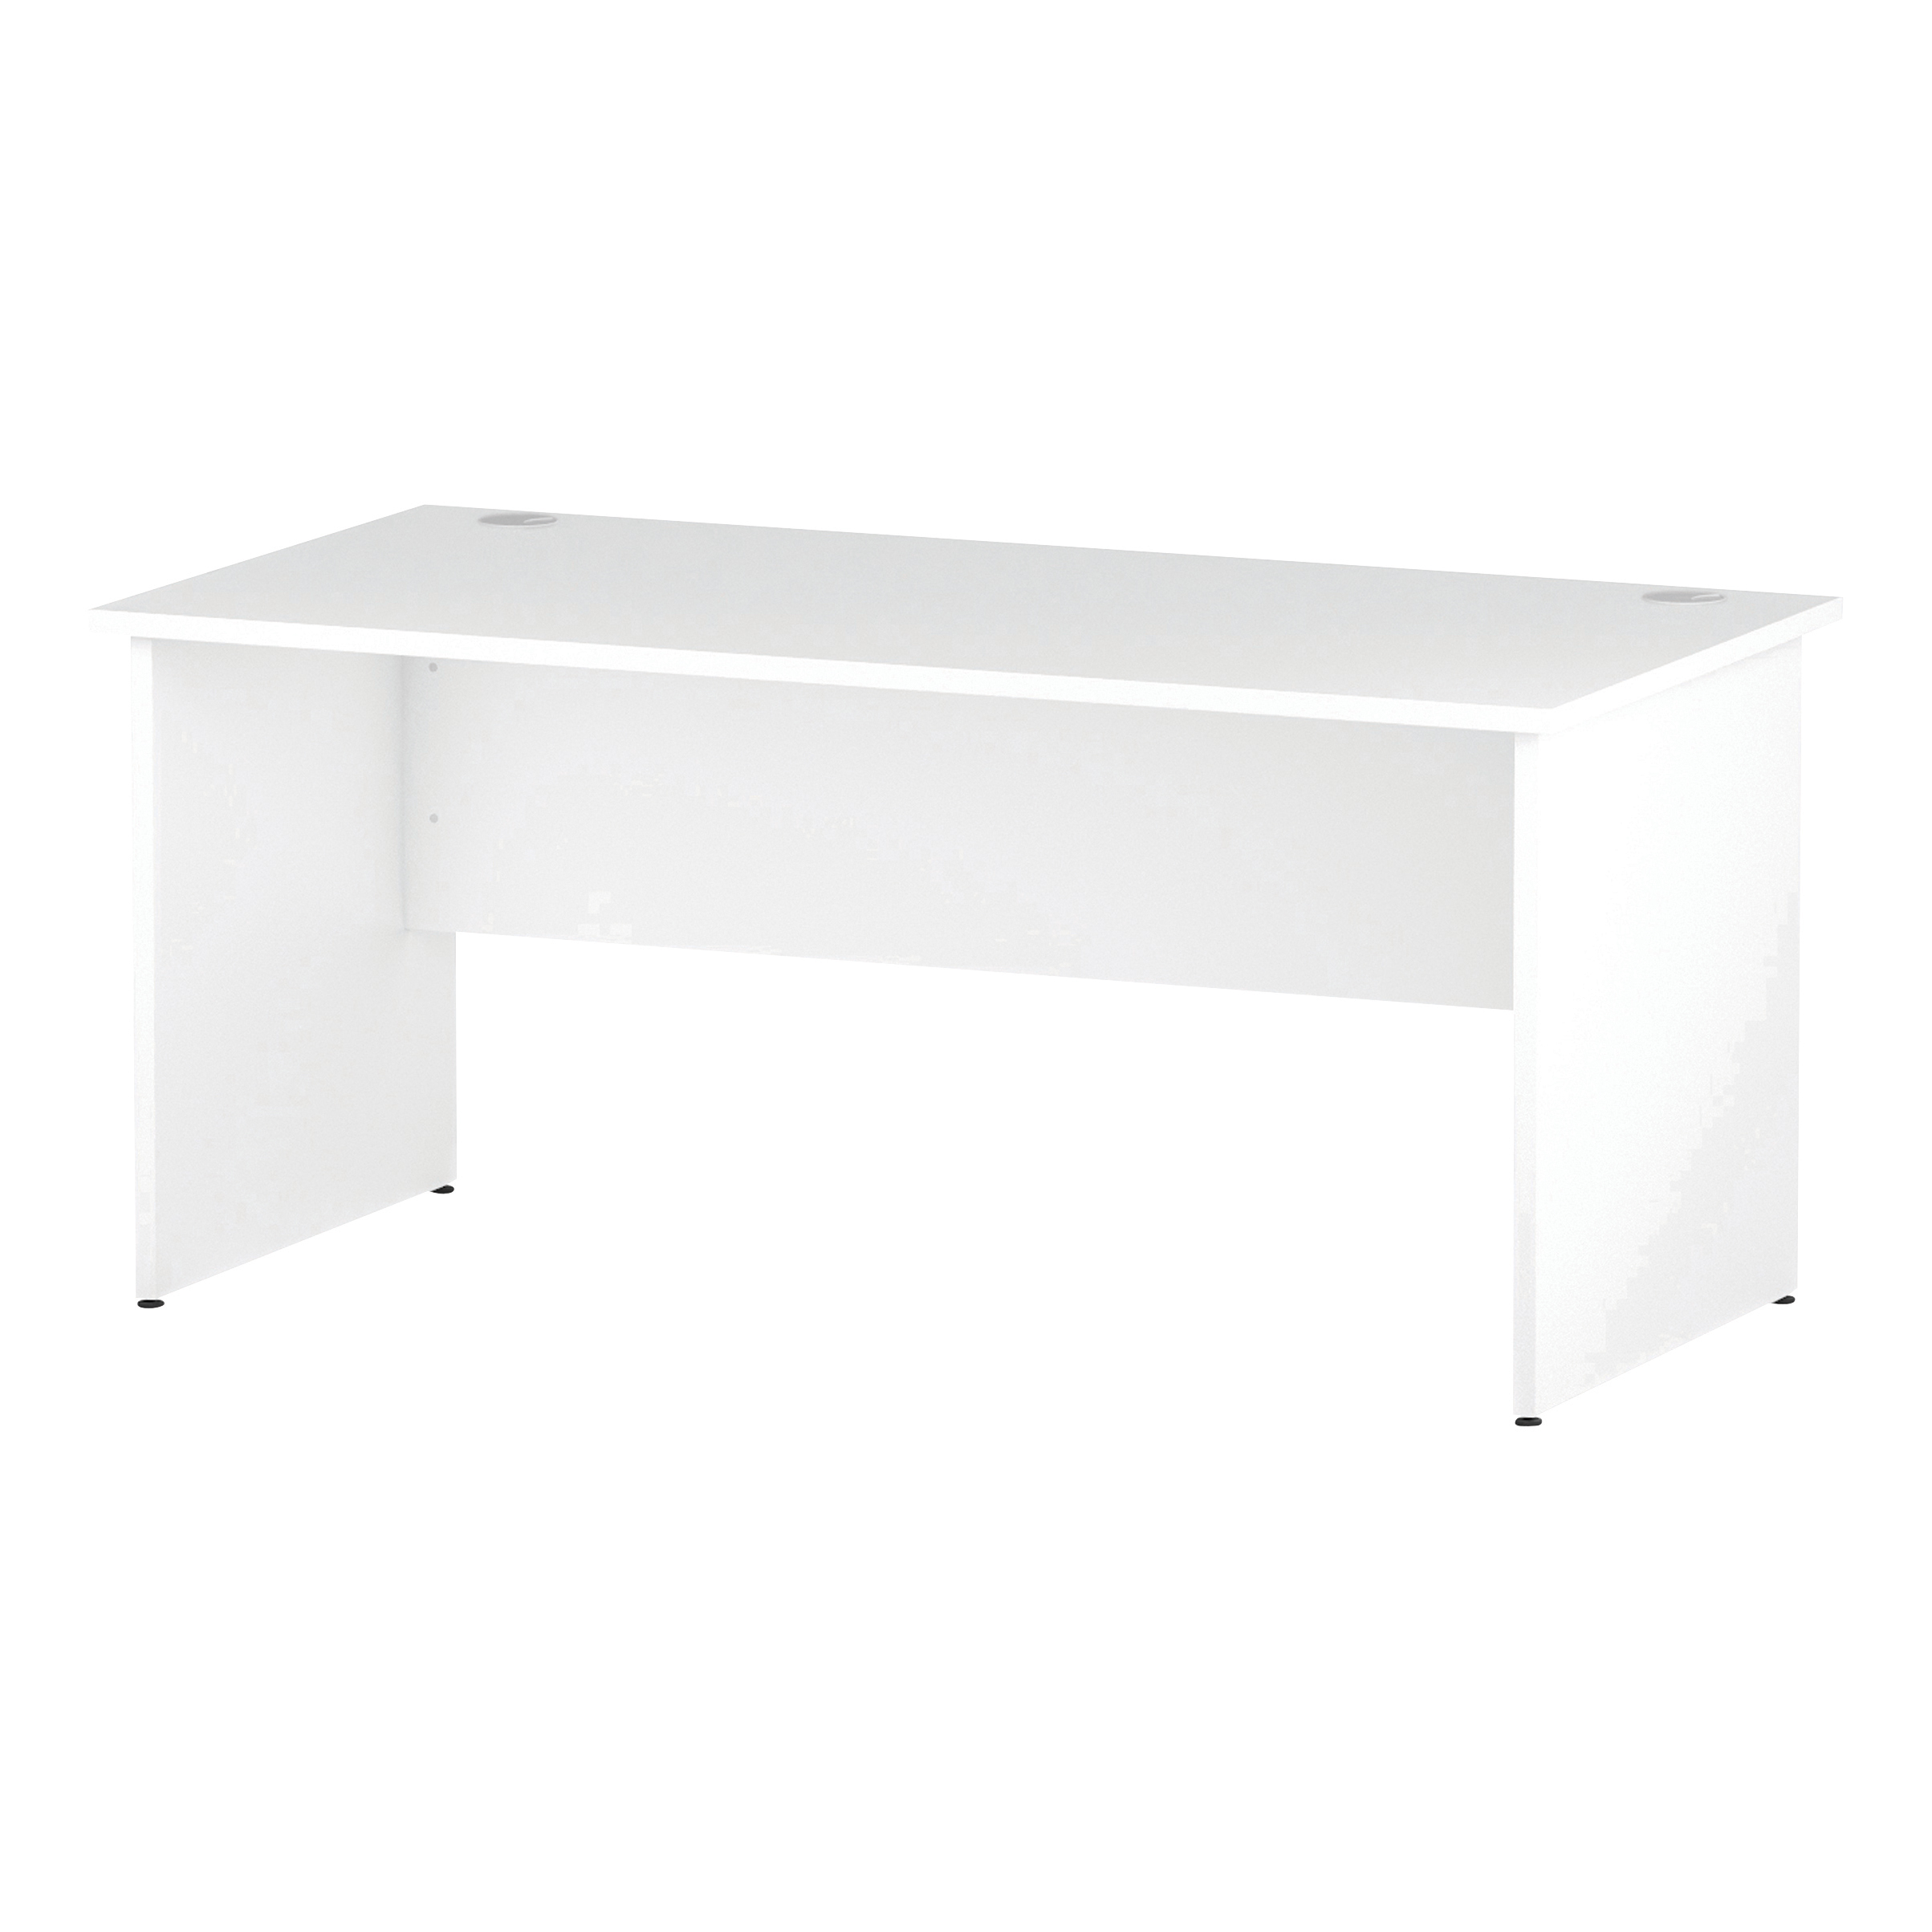 Trexus Rectangular Desk Panel End Leg 1600x800mm White Ref I000395